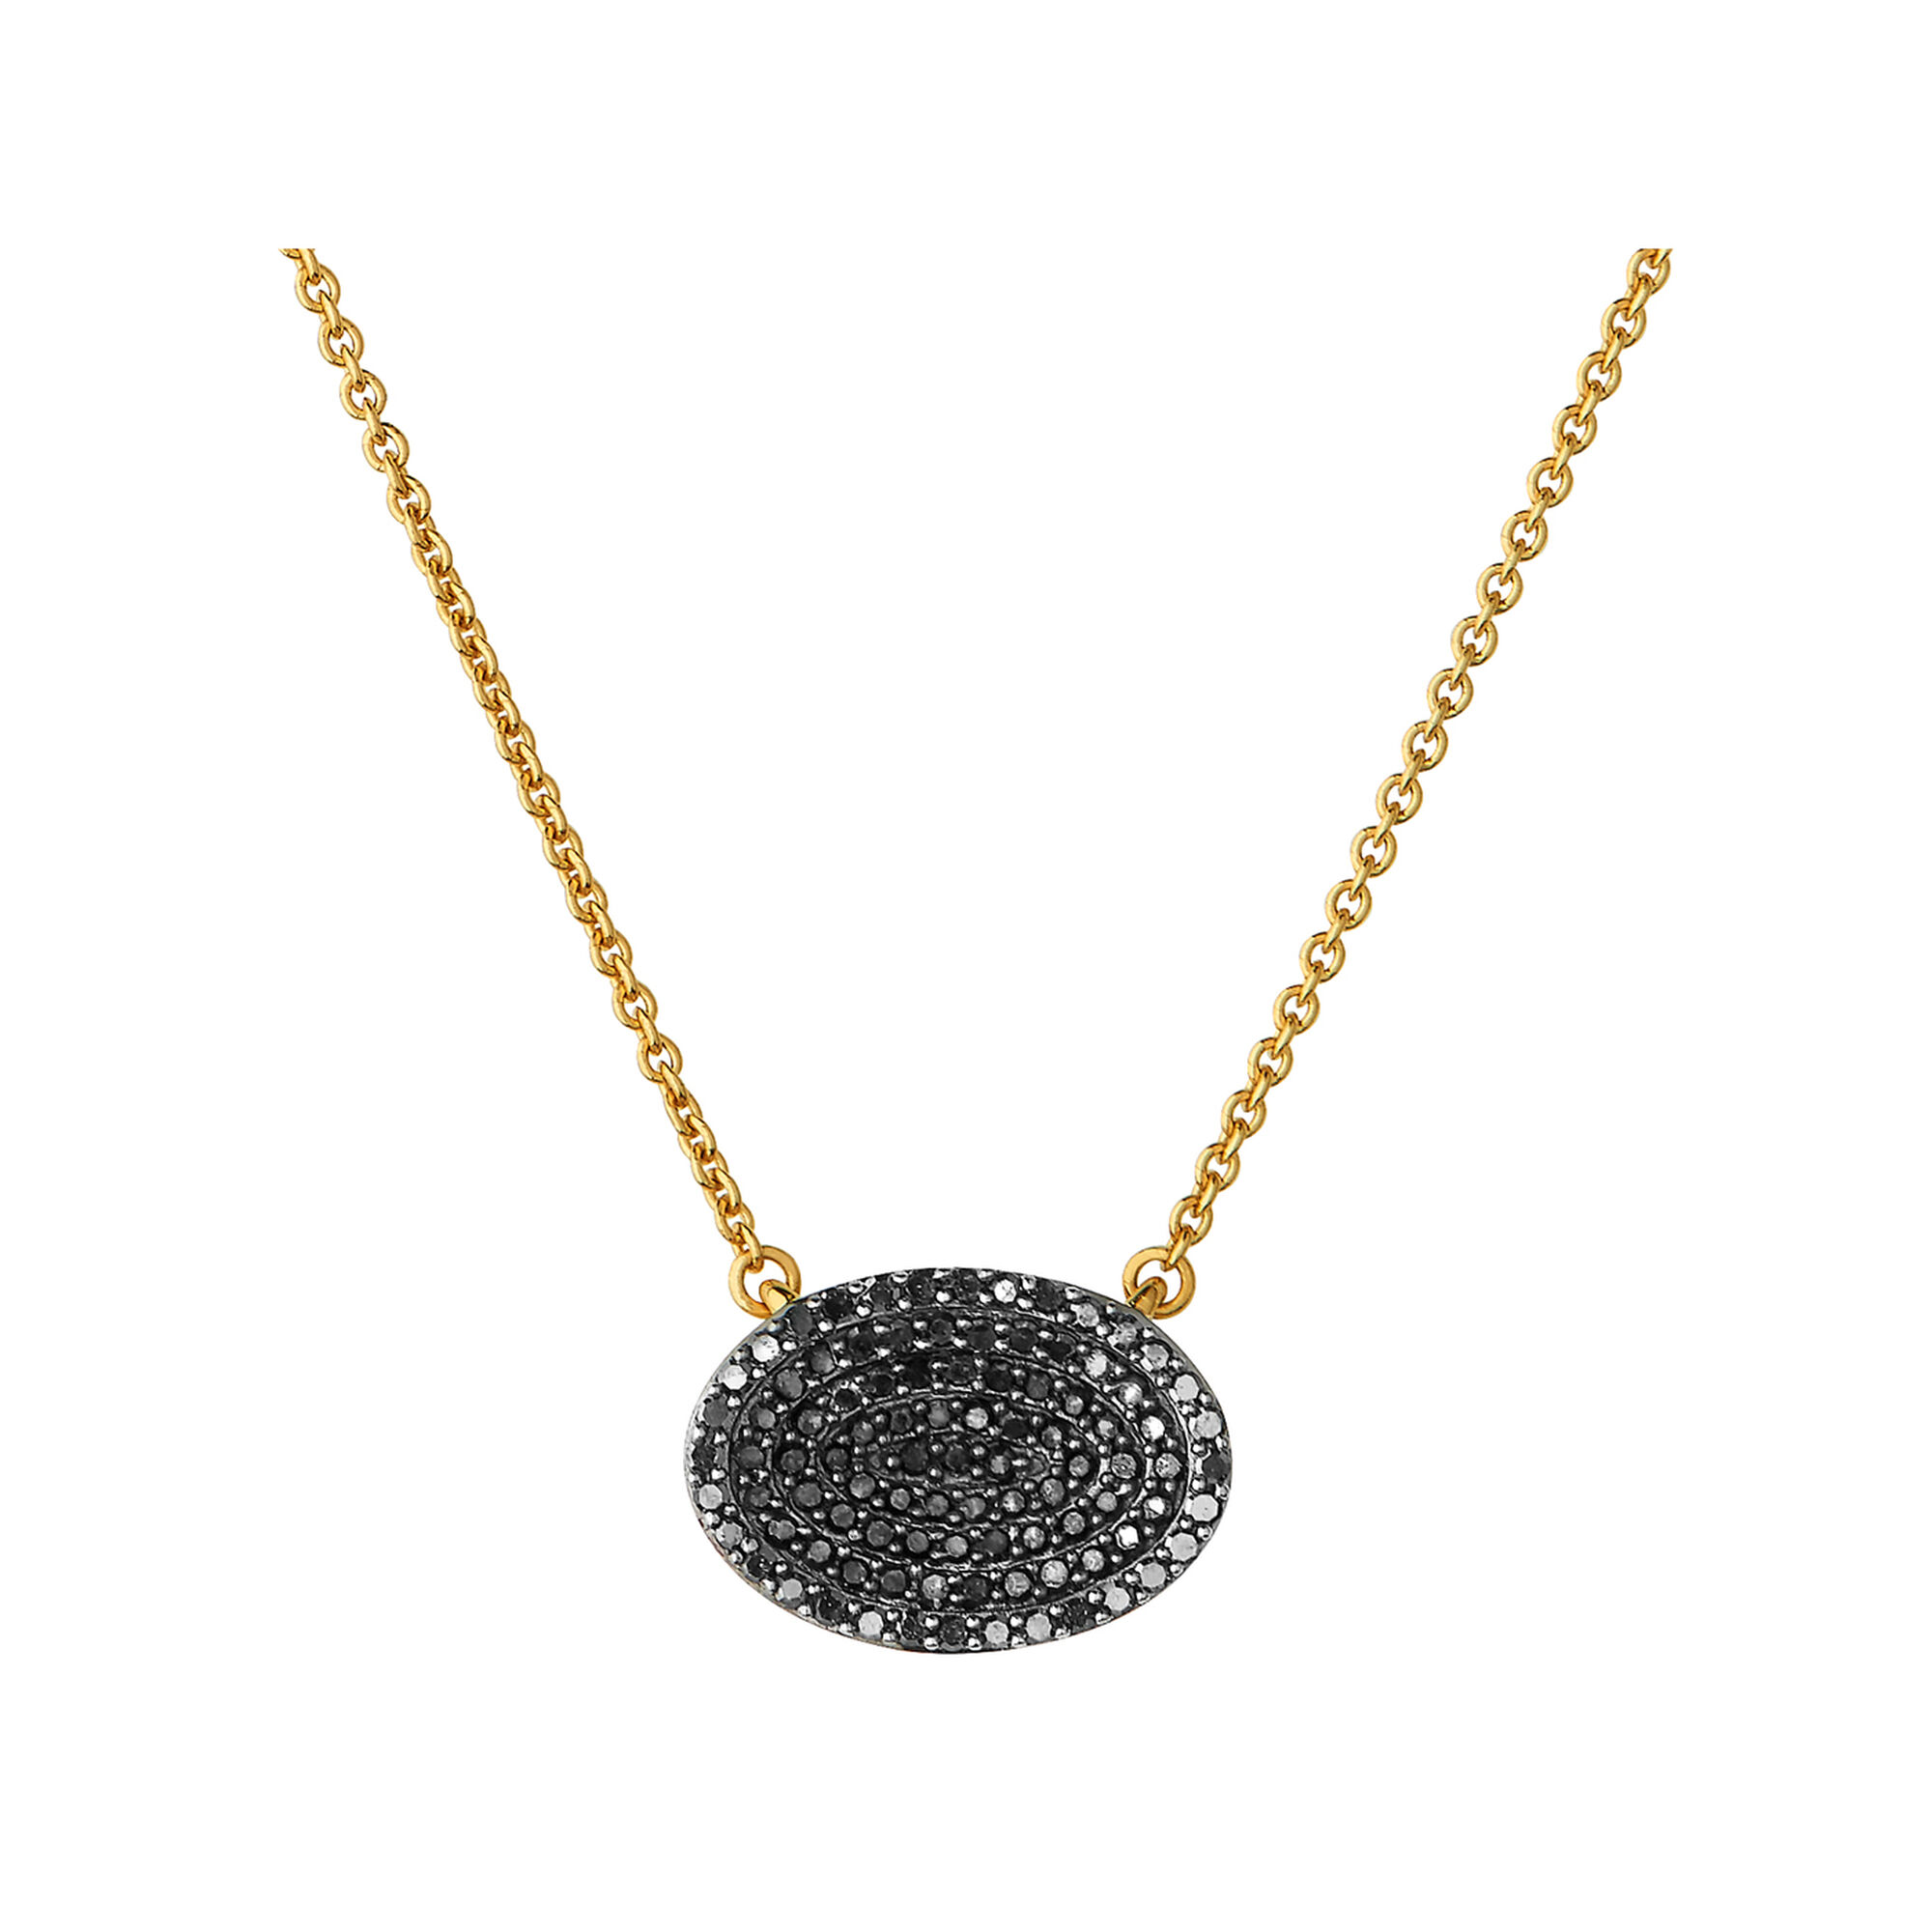 lyst bar jewelry necklace diane rose gold pendant in kordas black embellished diamond product gallery